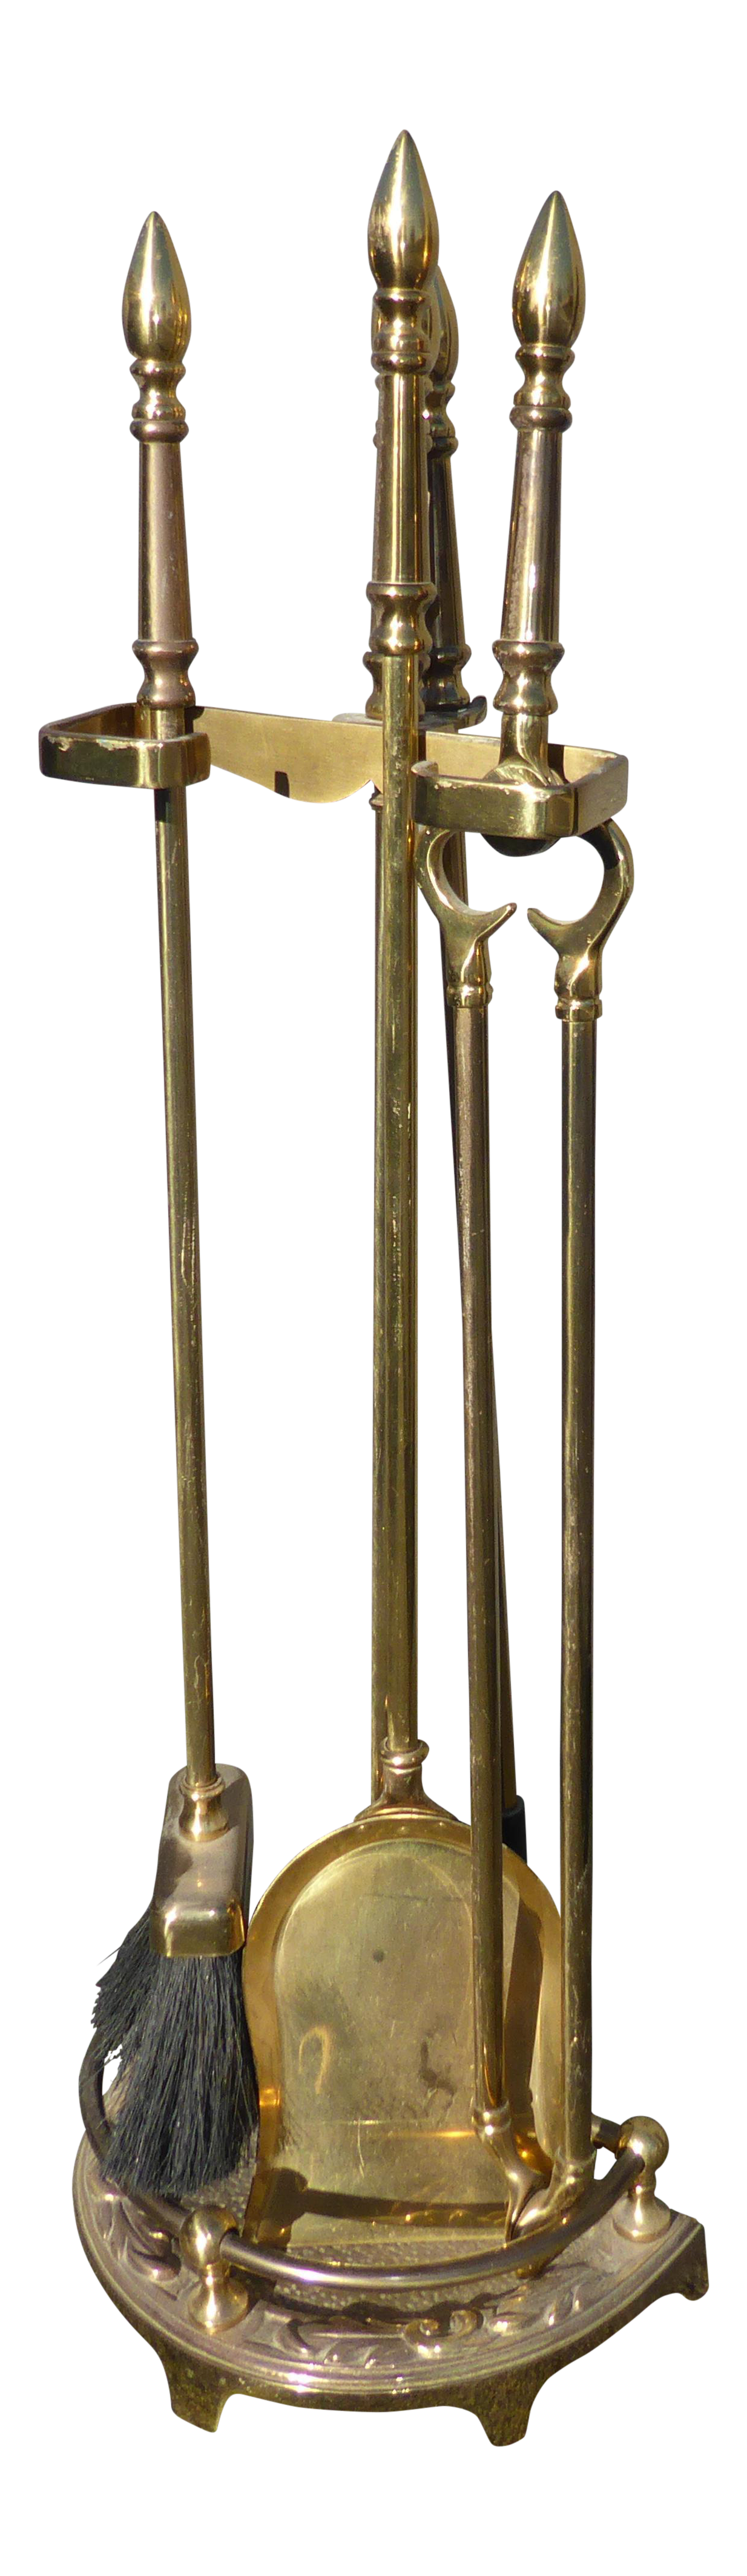 Vintage Brass Fireplace Tools Set Of 4 Chairish